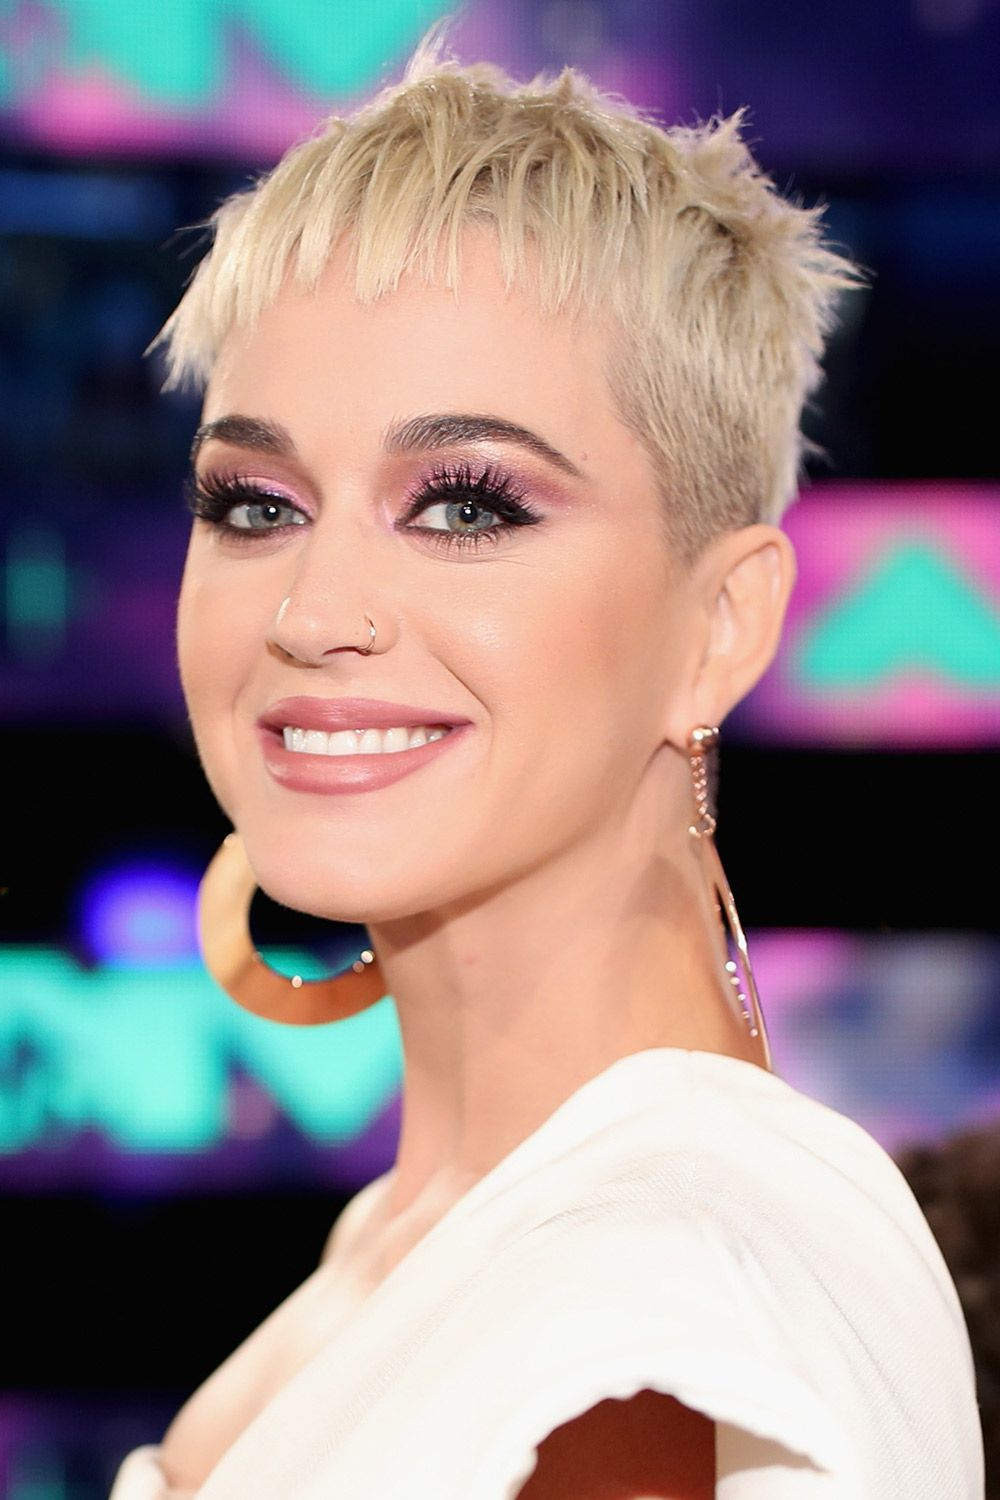 65 Best Short Hairstyles, Haircuts, And Short Hair Ideas For 2018 With Regard To Celebrities Short Haircuts (Gallery 13 of 25)